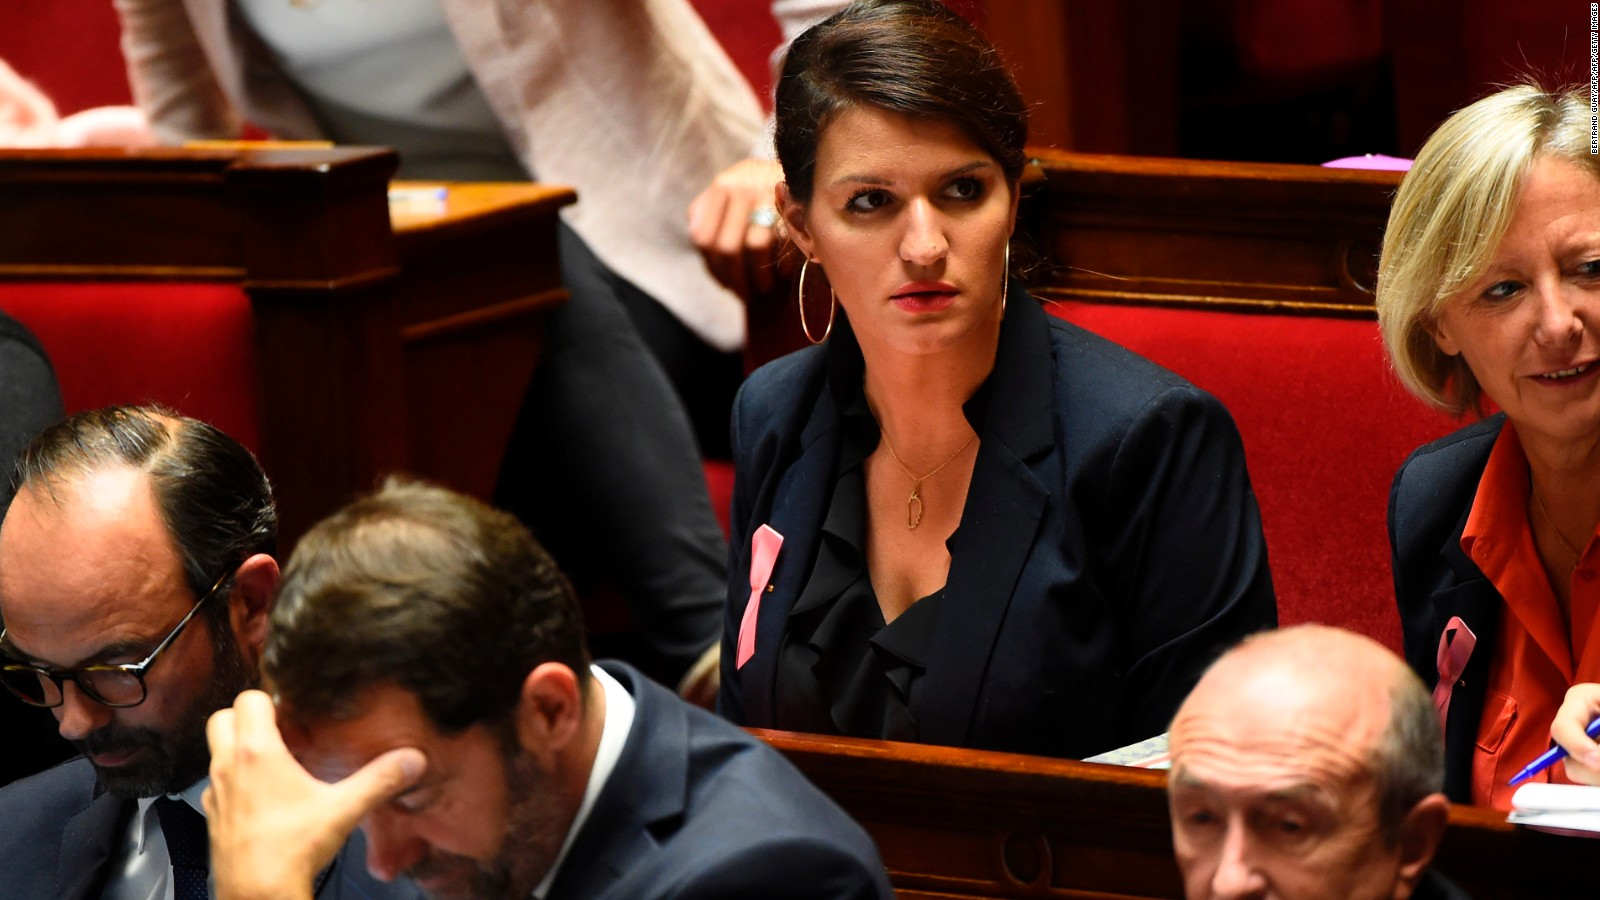 Peace Index and Global Security.: France minister Schiappa